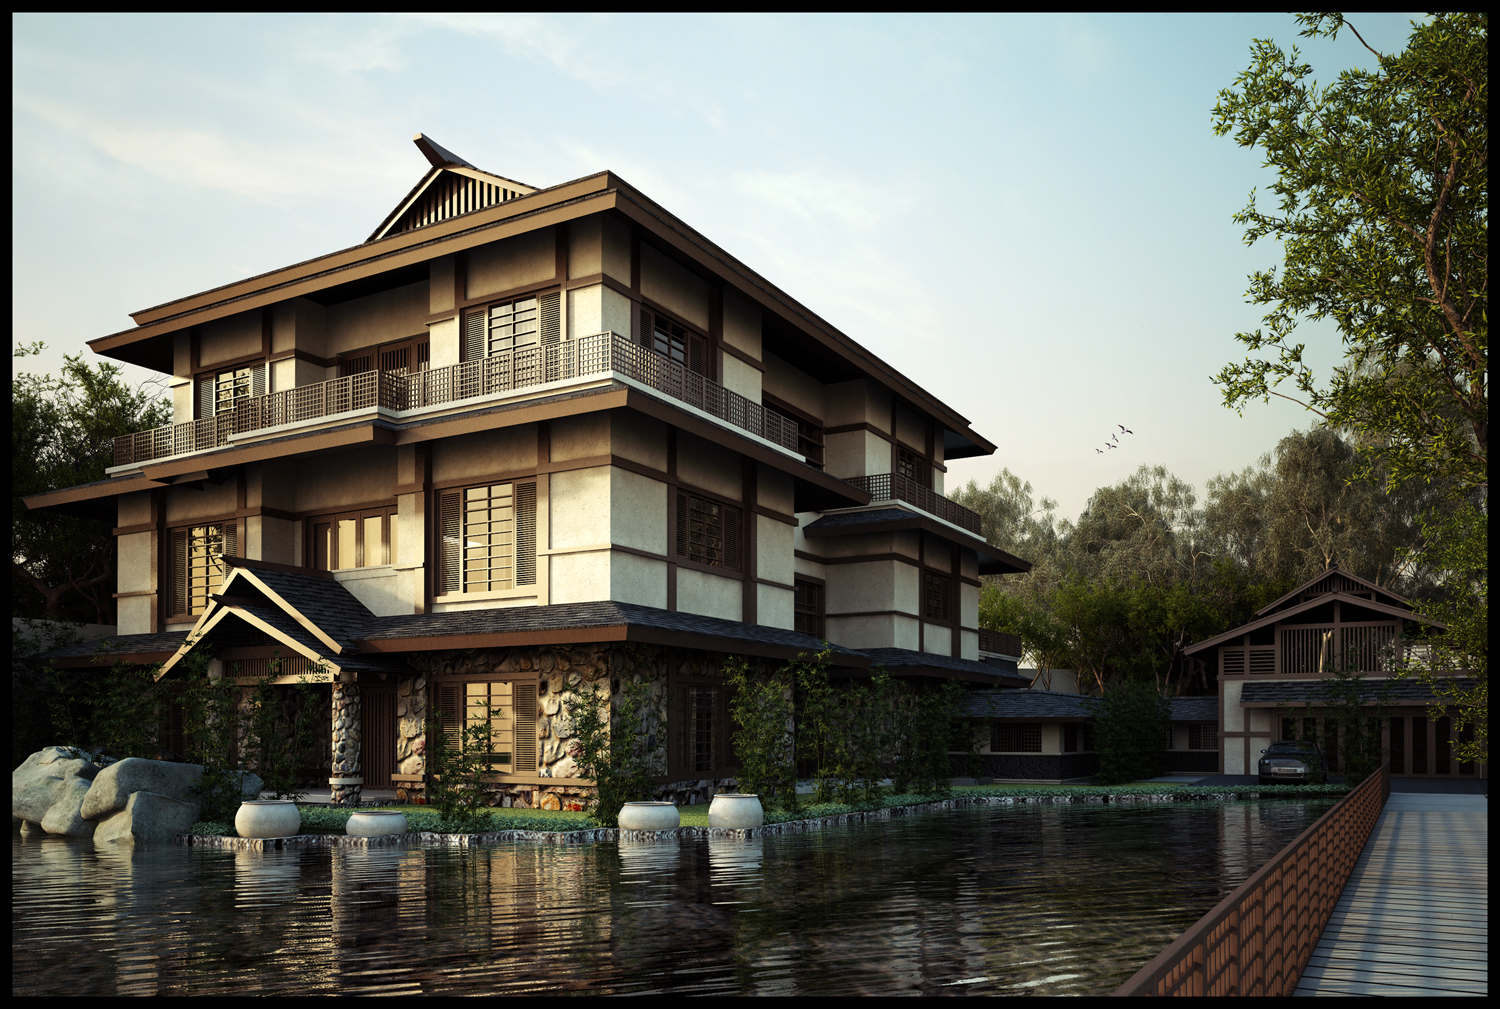 Japan Home Plans Designing A Japanese Style House Home And Garden Healthy